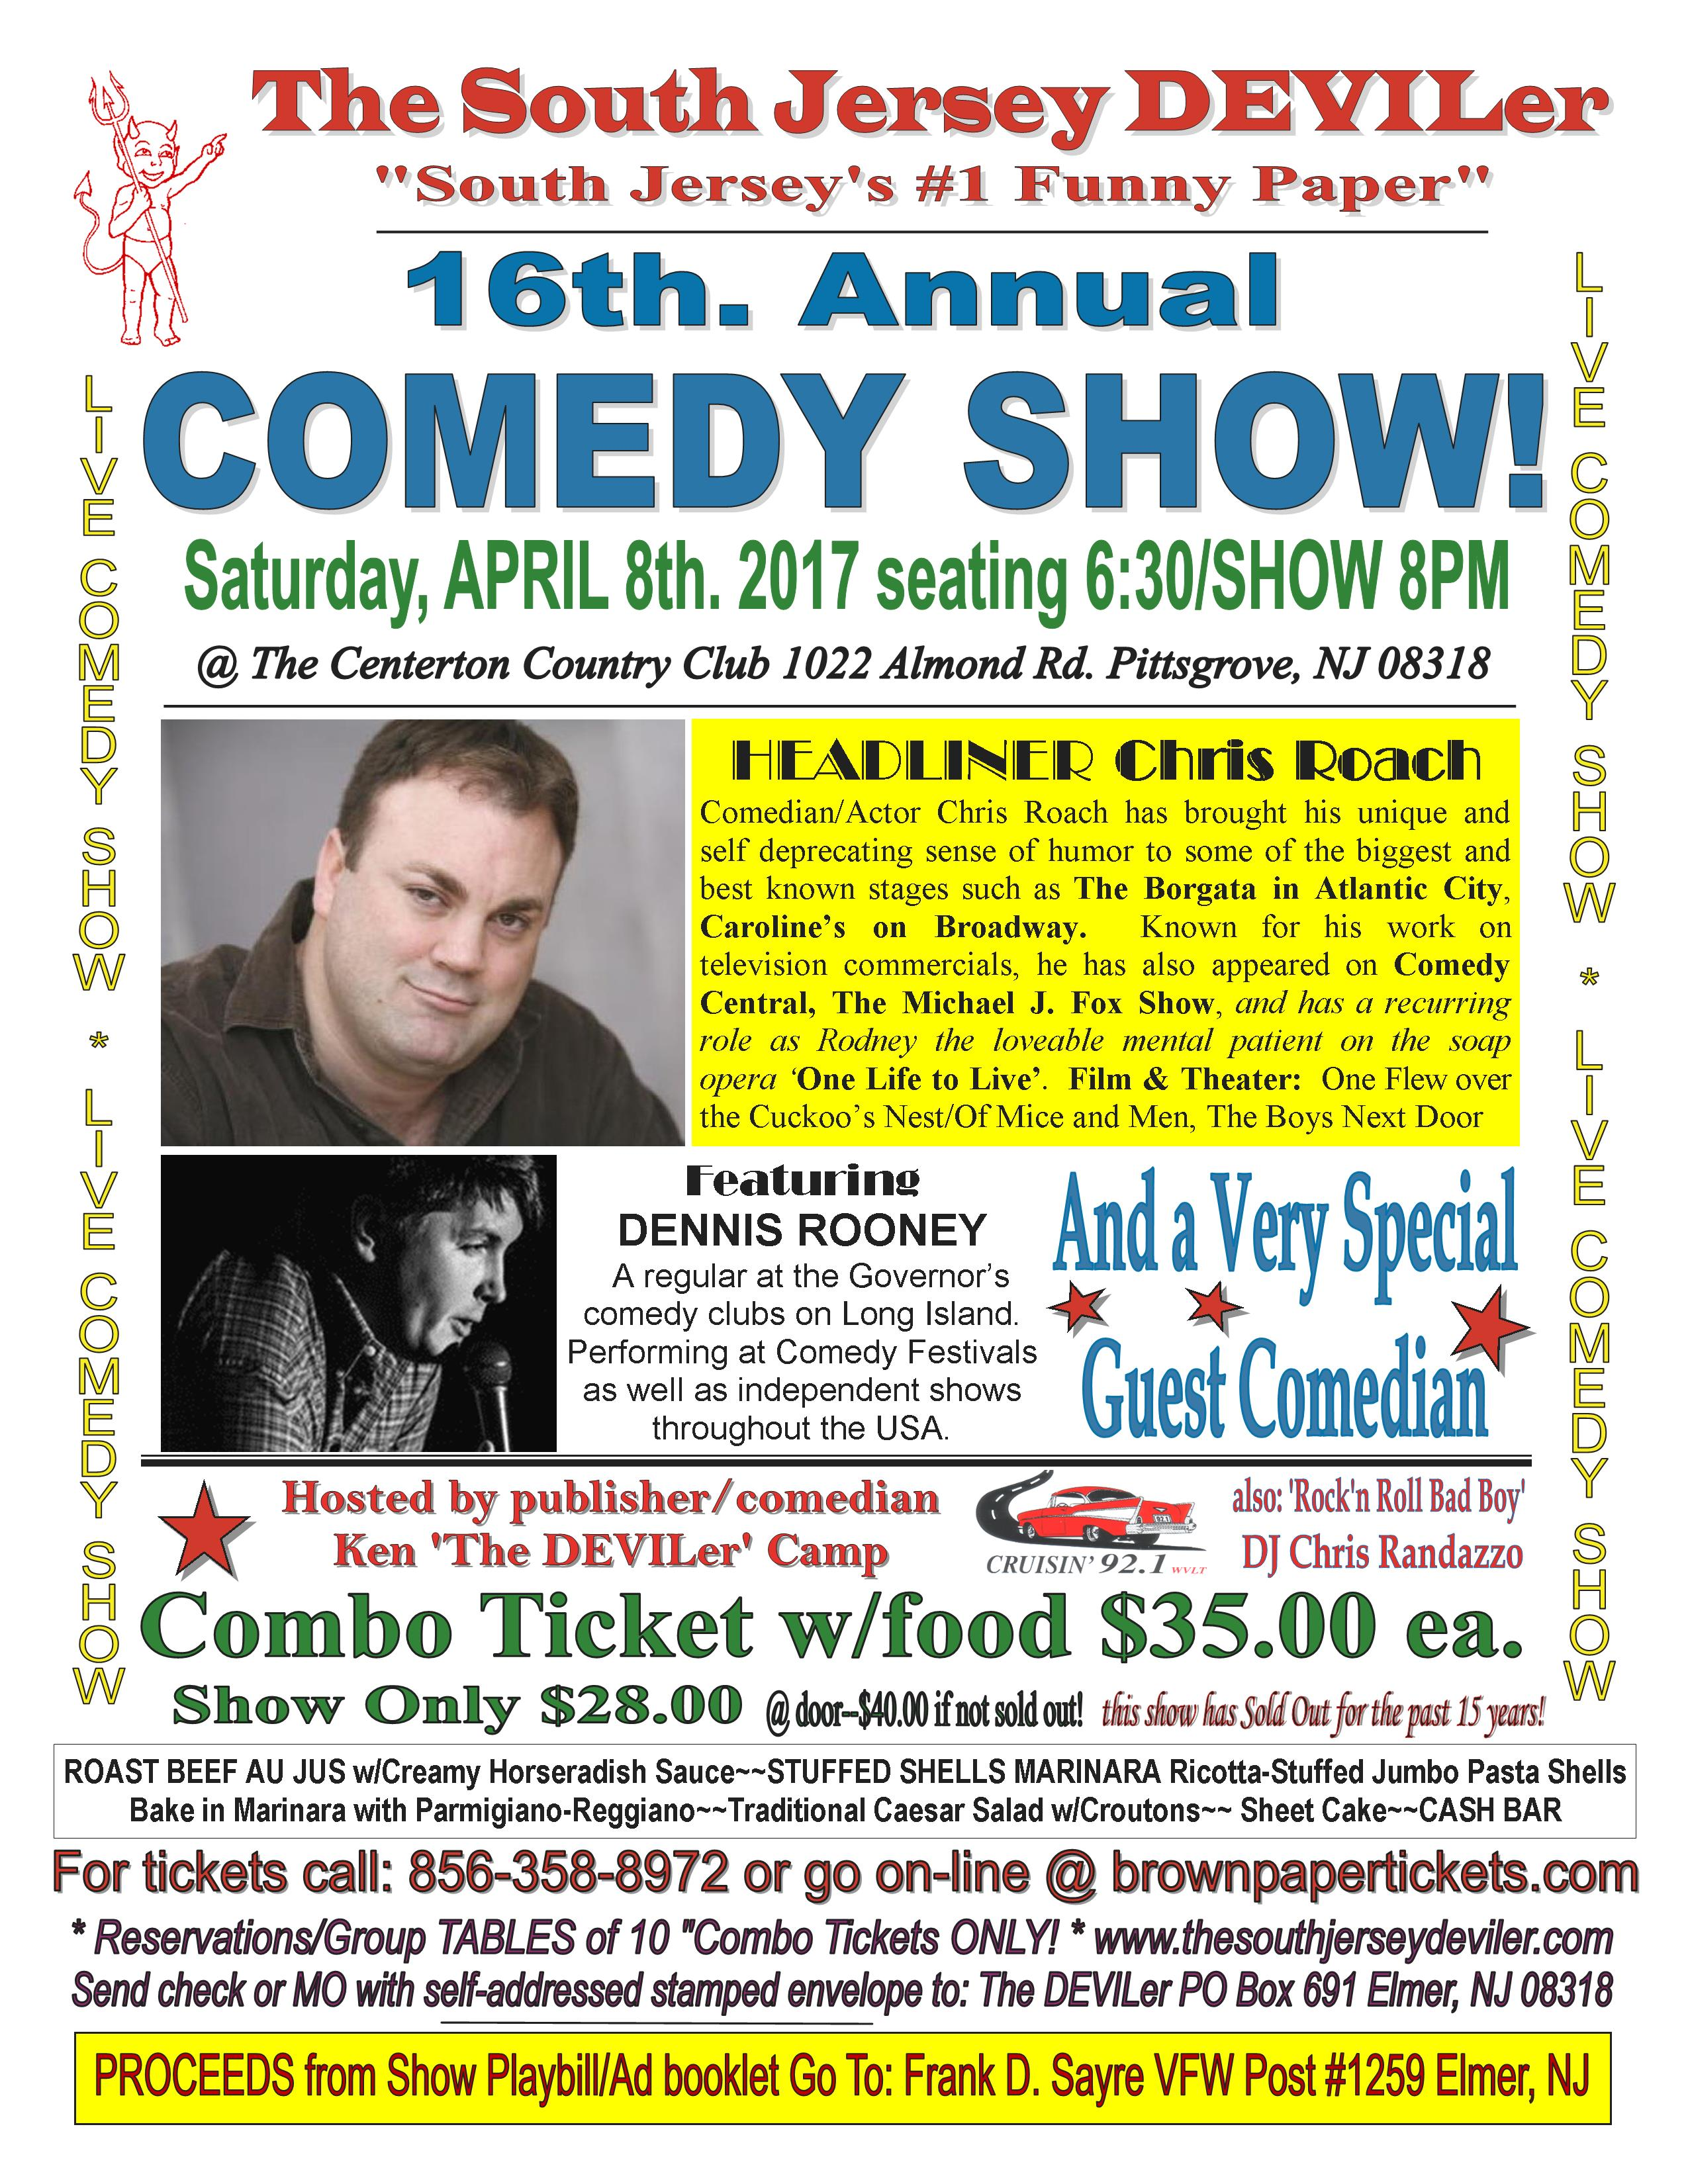 The South Jersey DEVILer's 16th. Annual Comedy Show